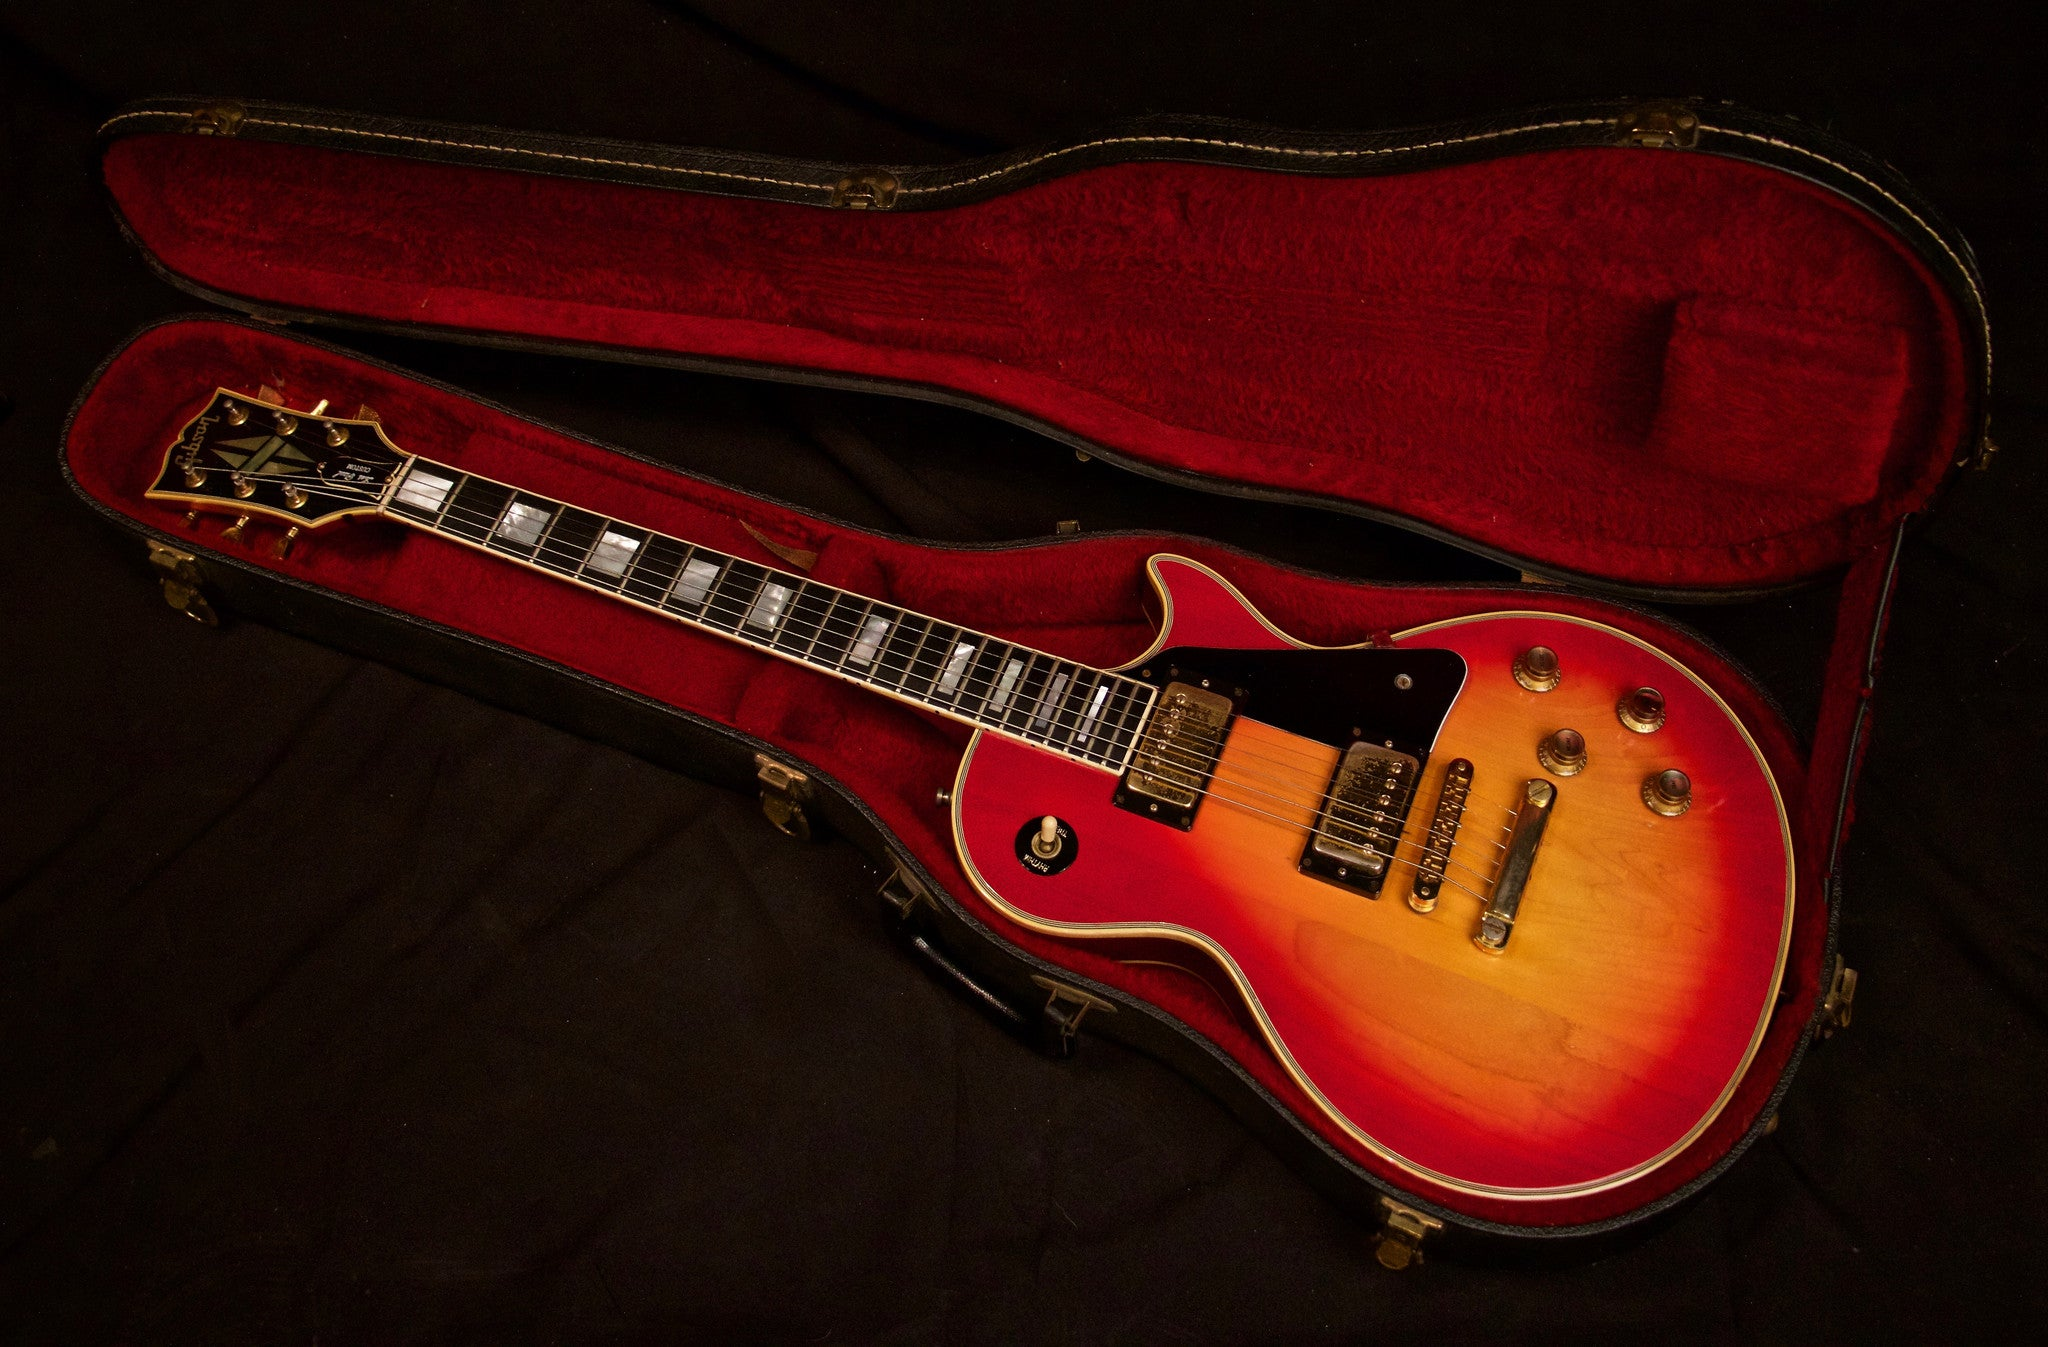 Gibson Les Paul Custom 1976 Vintage Electric Guitar in Original Hardshell Case